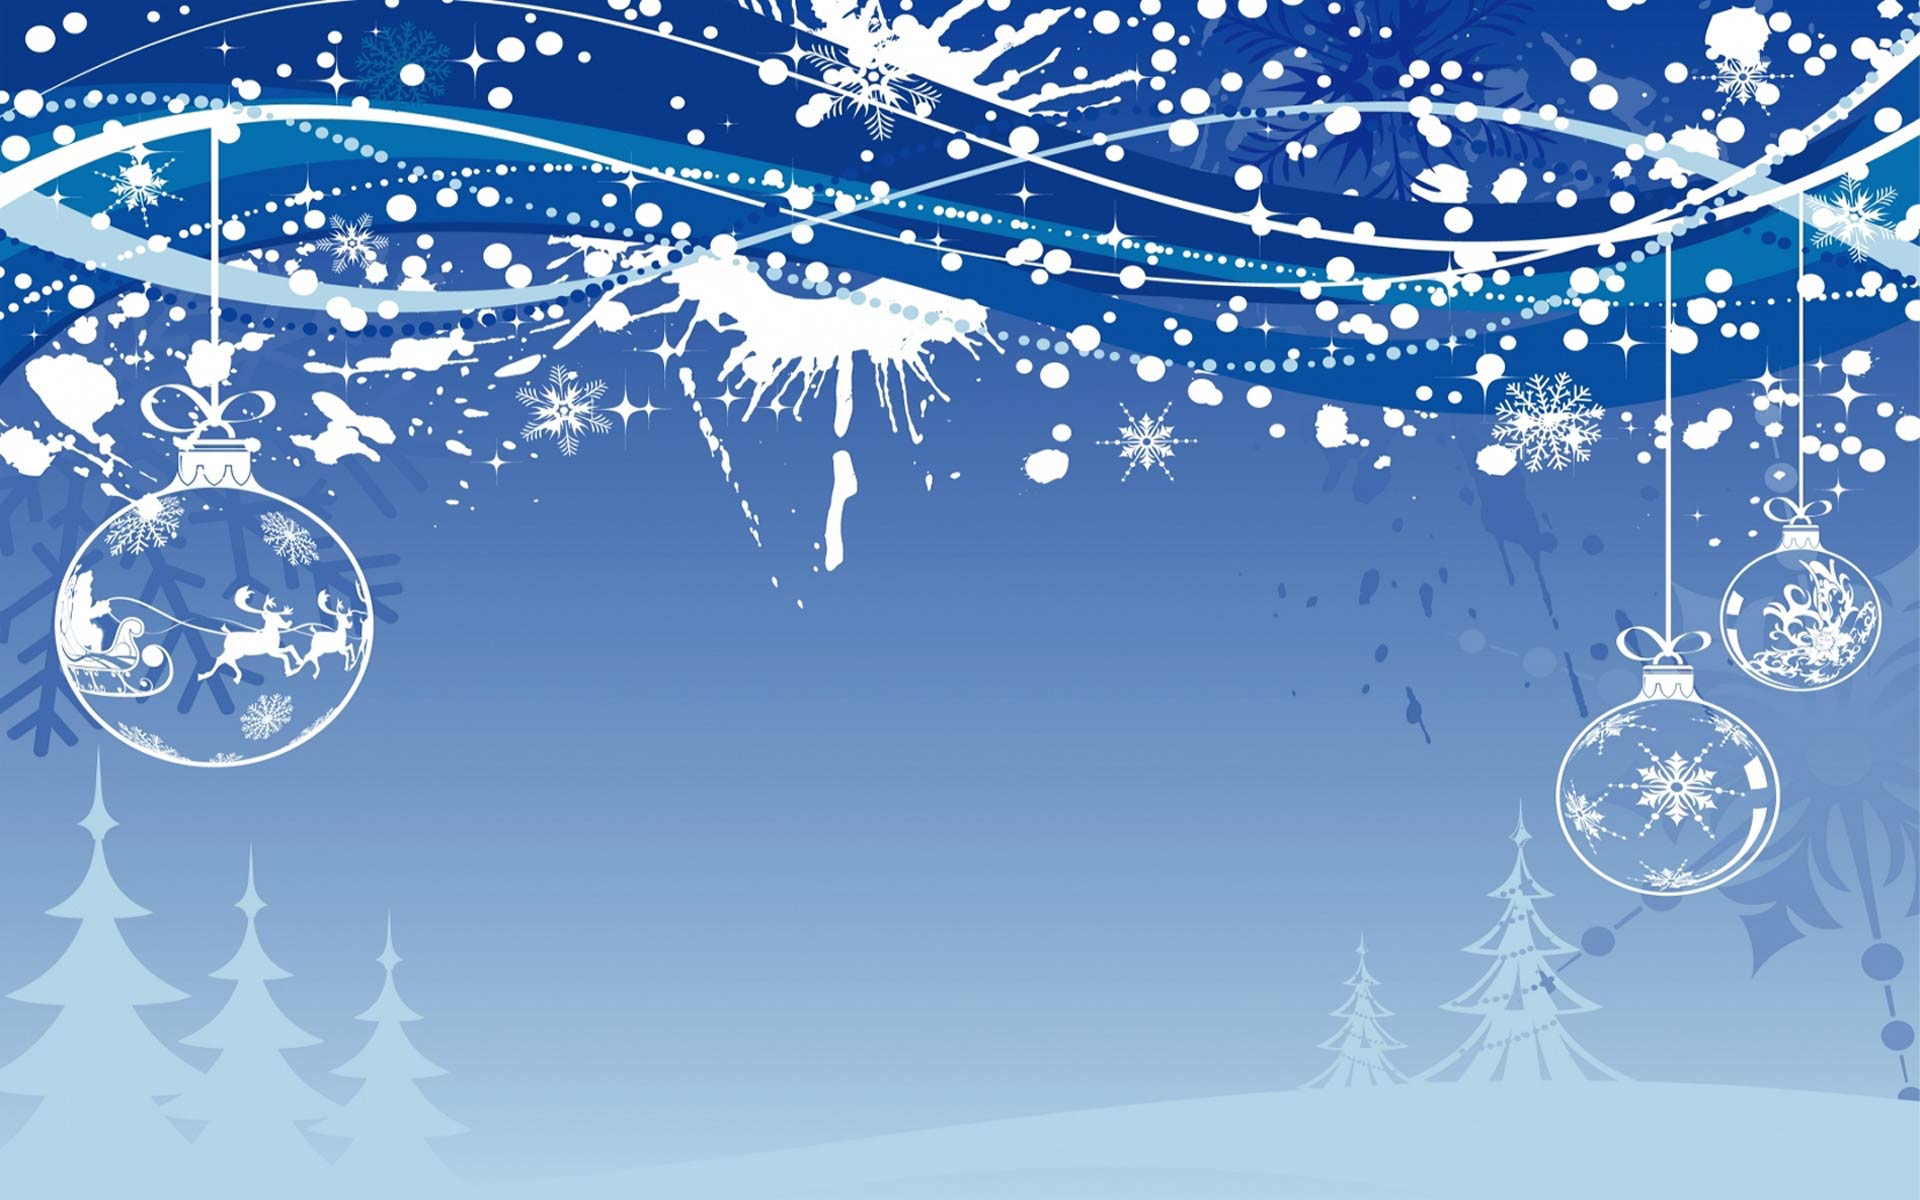 Christmas Wallpaper Widescreen 10346 Hd Wallpapers in Celebrations 1920x1200